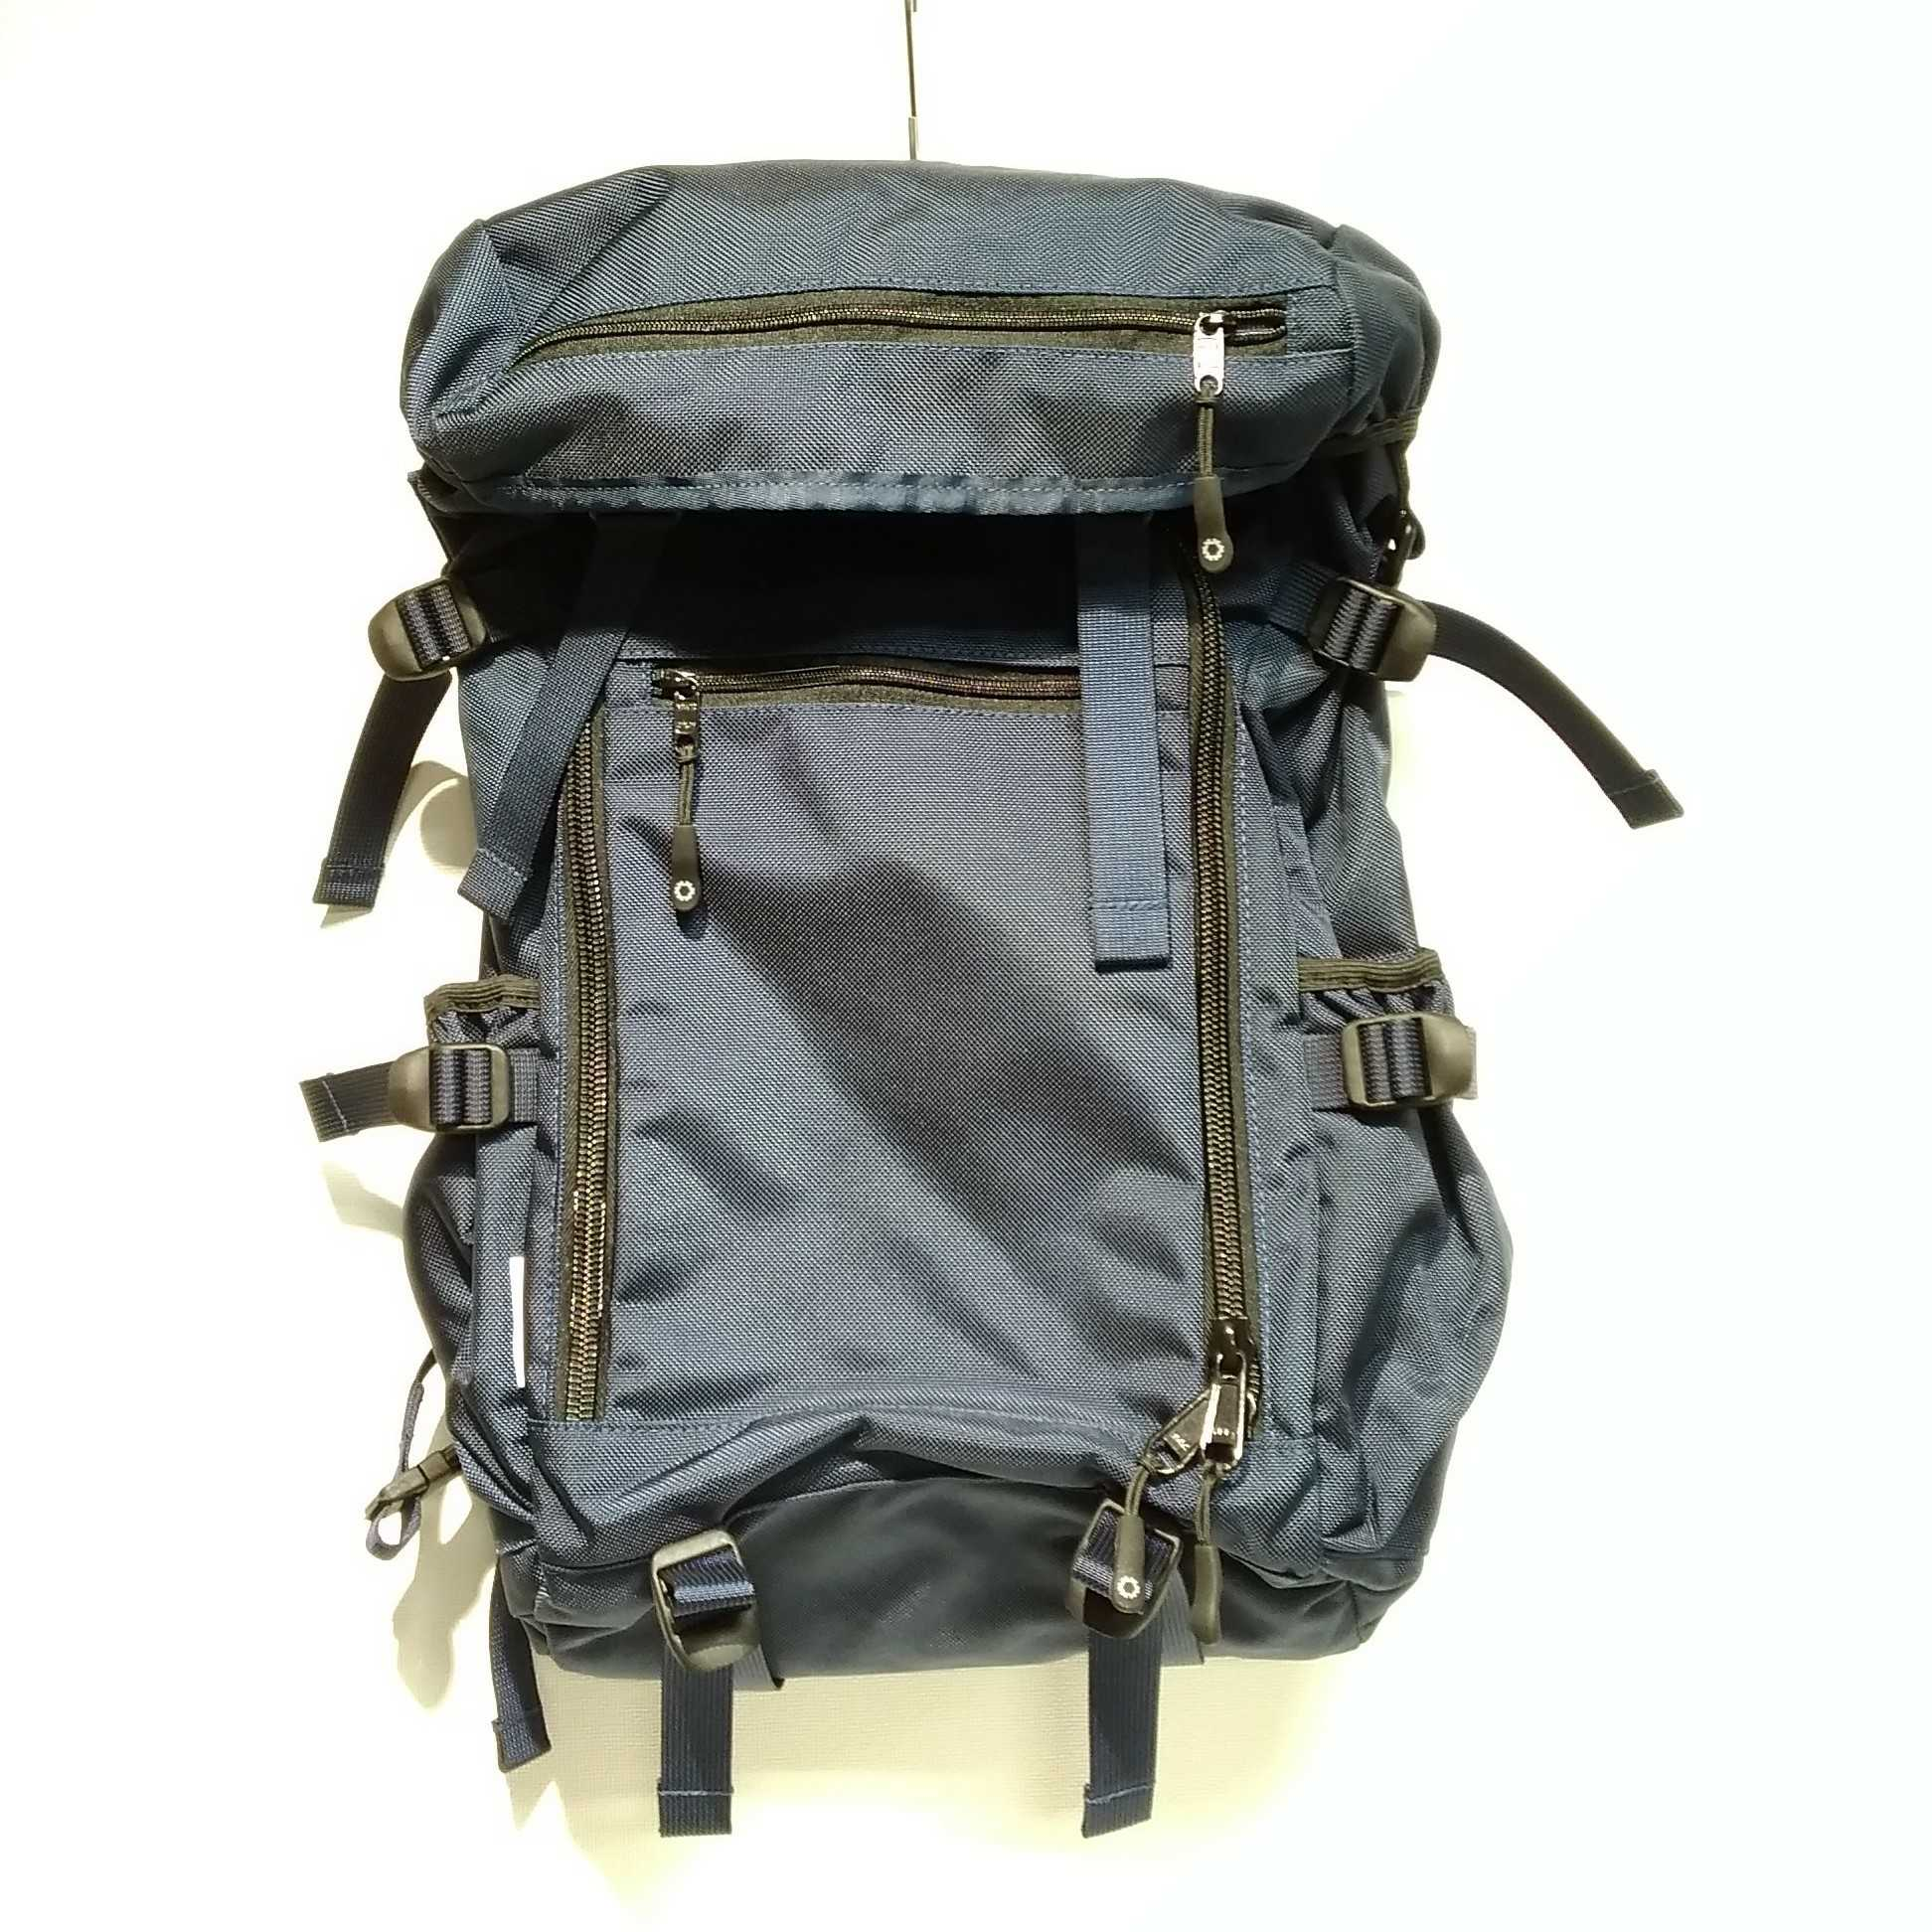 RUCKPACK 25L|DSPTCH